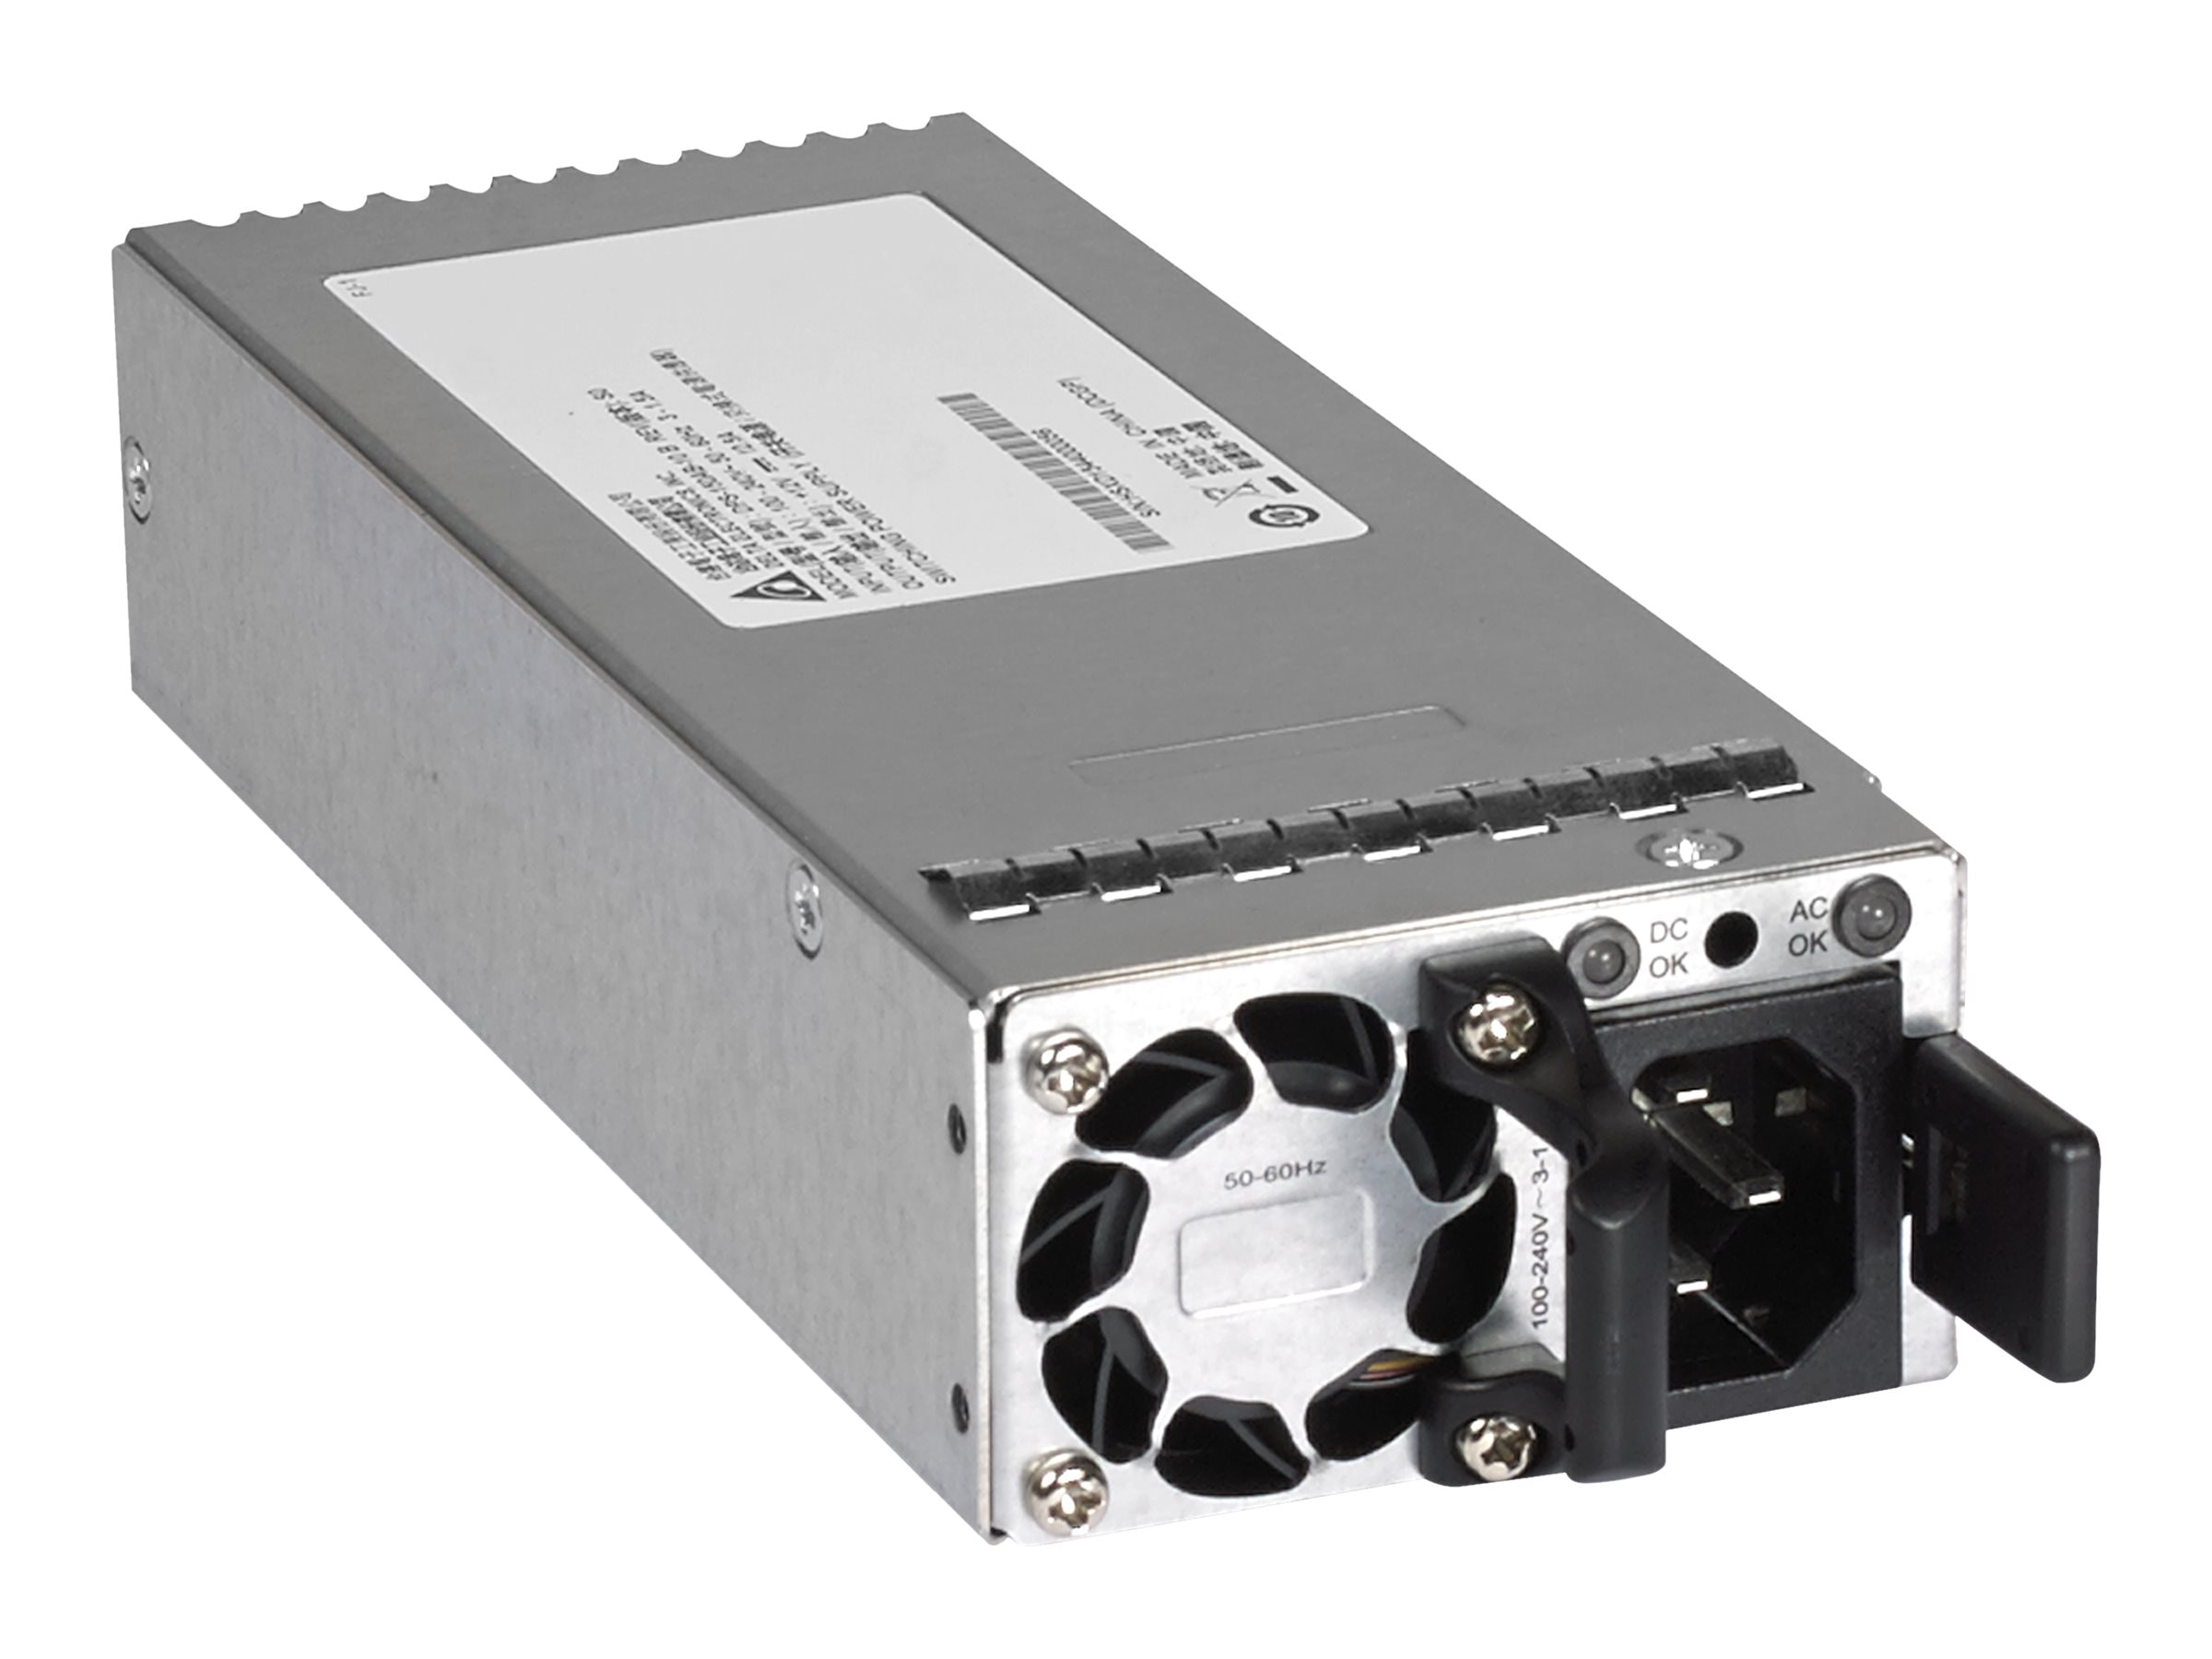 Netgear ProSafe 150W Power Module for M4300-28G 52G